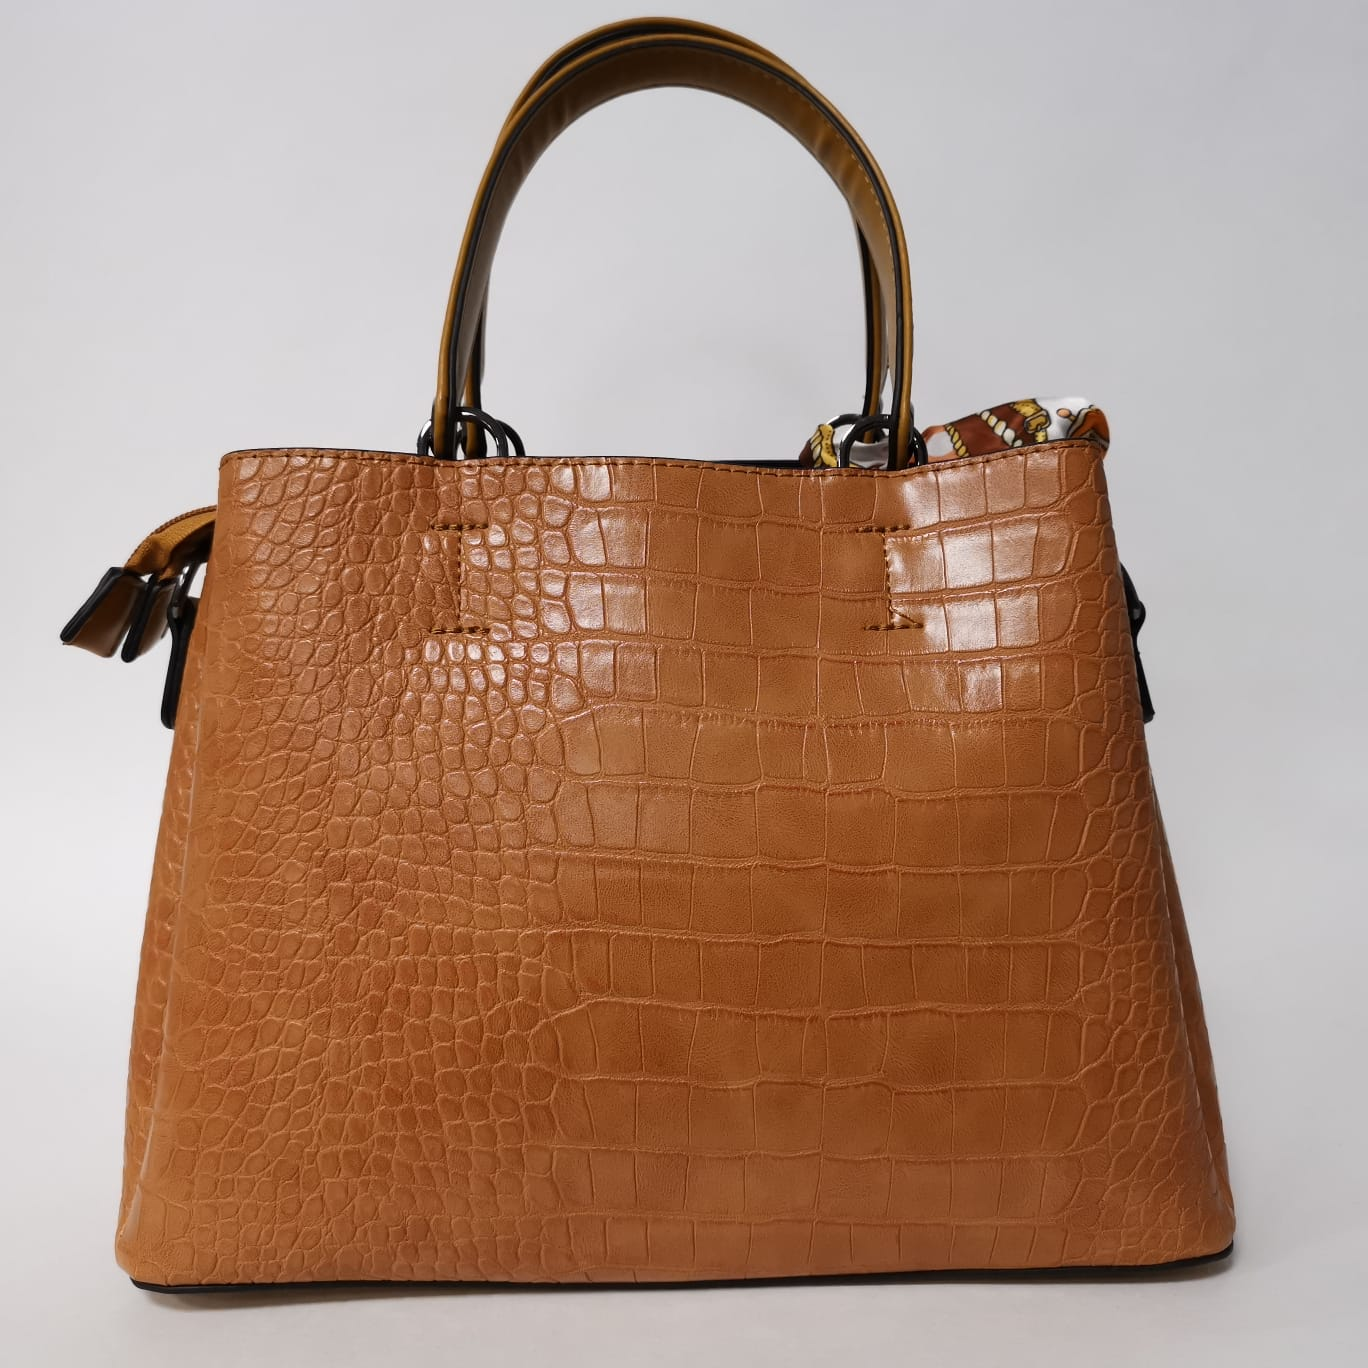 Amy Croc Handbag in Mustard